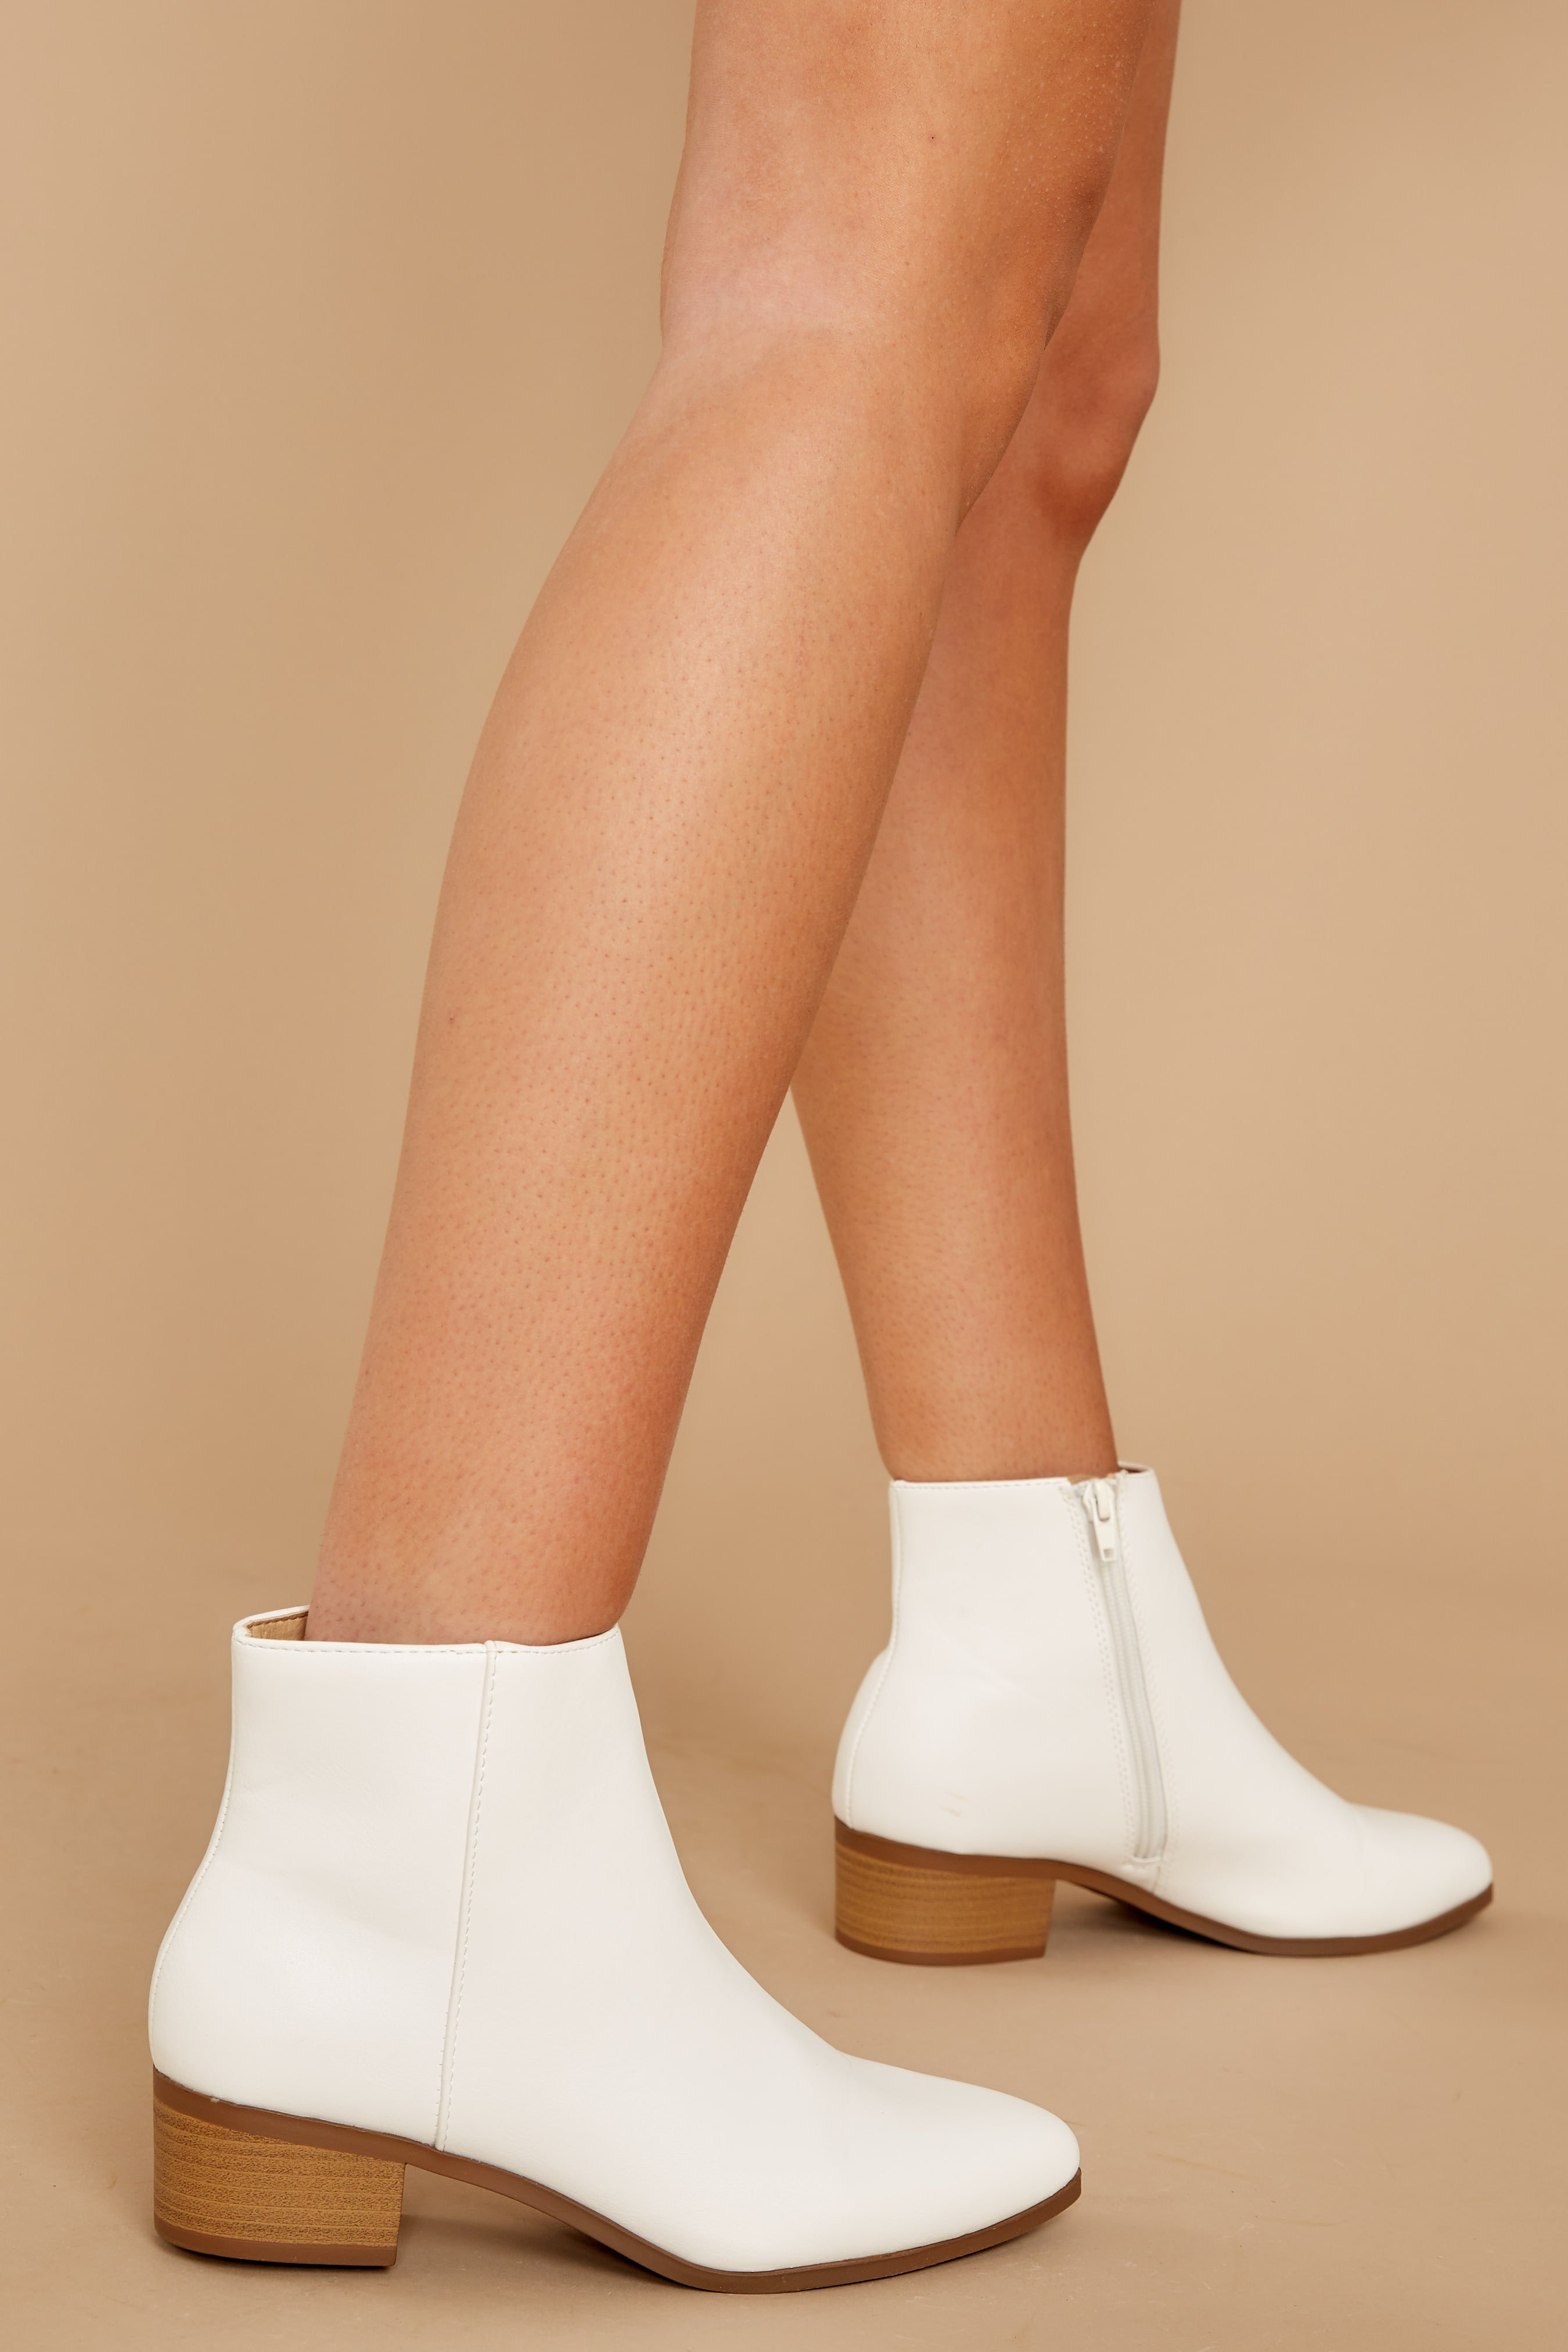 60s Shoes, Boots Chic Statement White Ankle Booties $34.00 AT vintagedancer.com